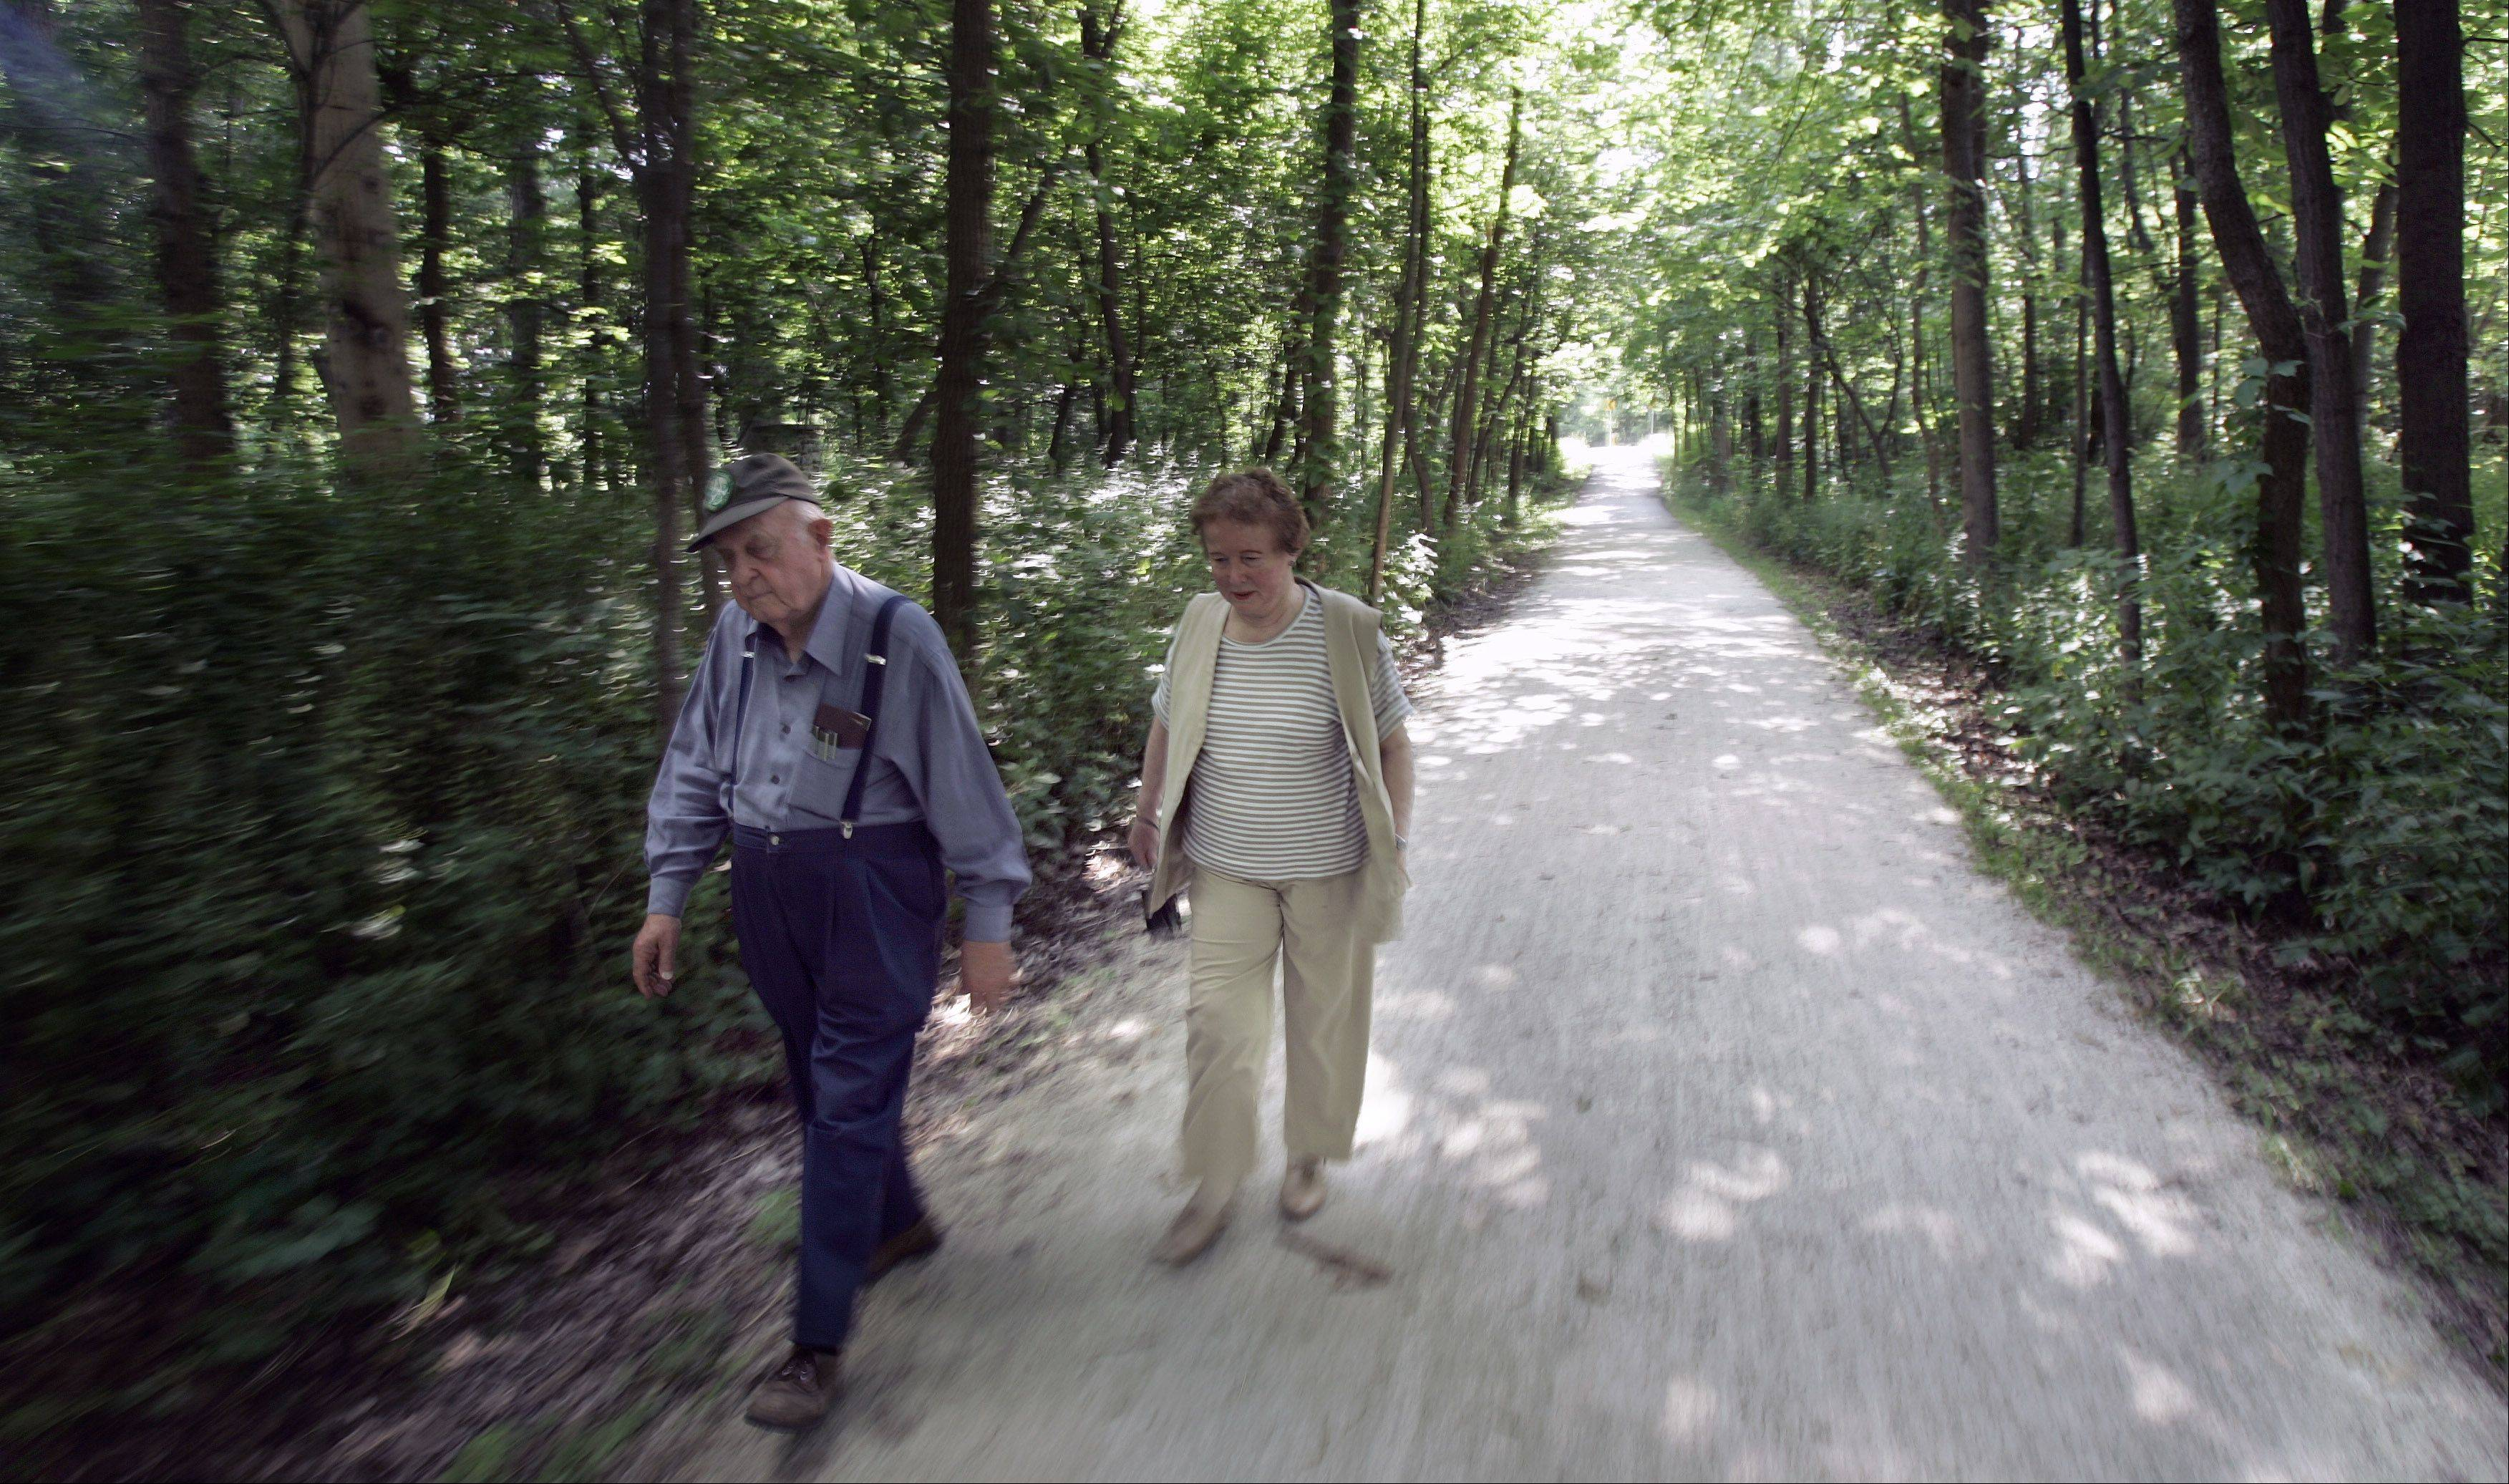 Jean Mooring and her husband Paul were among the first advocates of the Illinois Prairie Path in the 1960s. Since that time, they worked to maintain a section of the path near their home in Glen Ellyn.